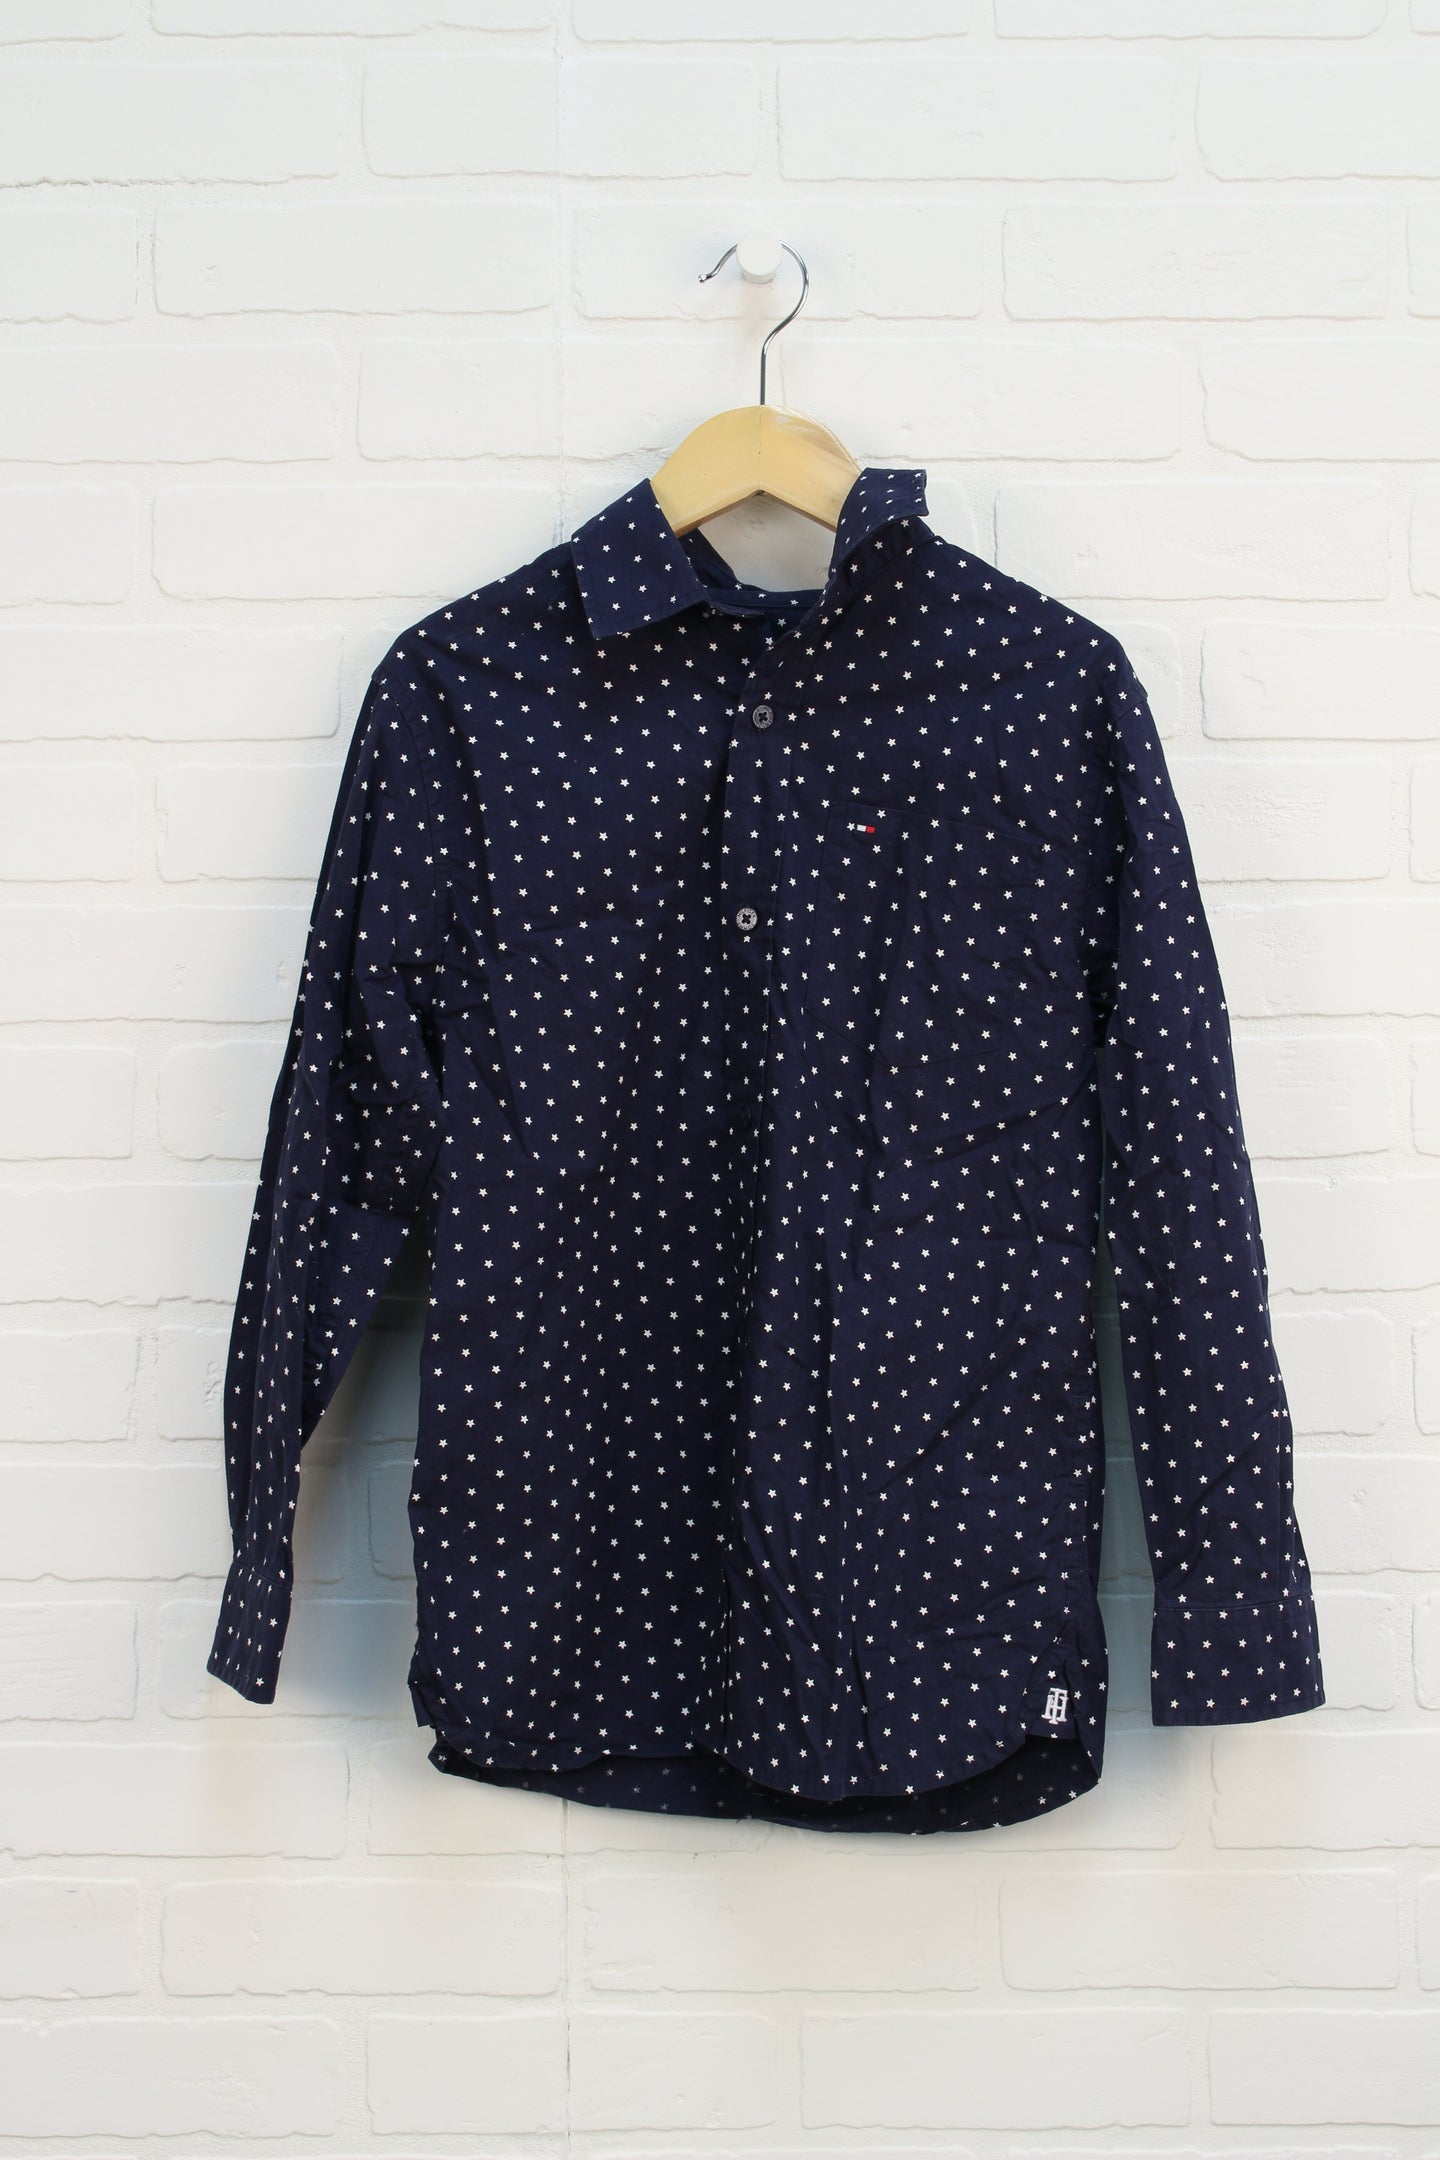 Navy Star Button-Up (Size M/8-10)